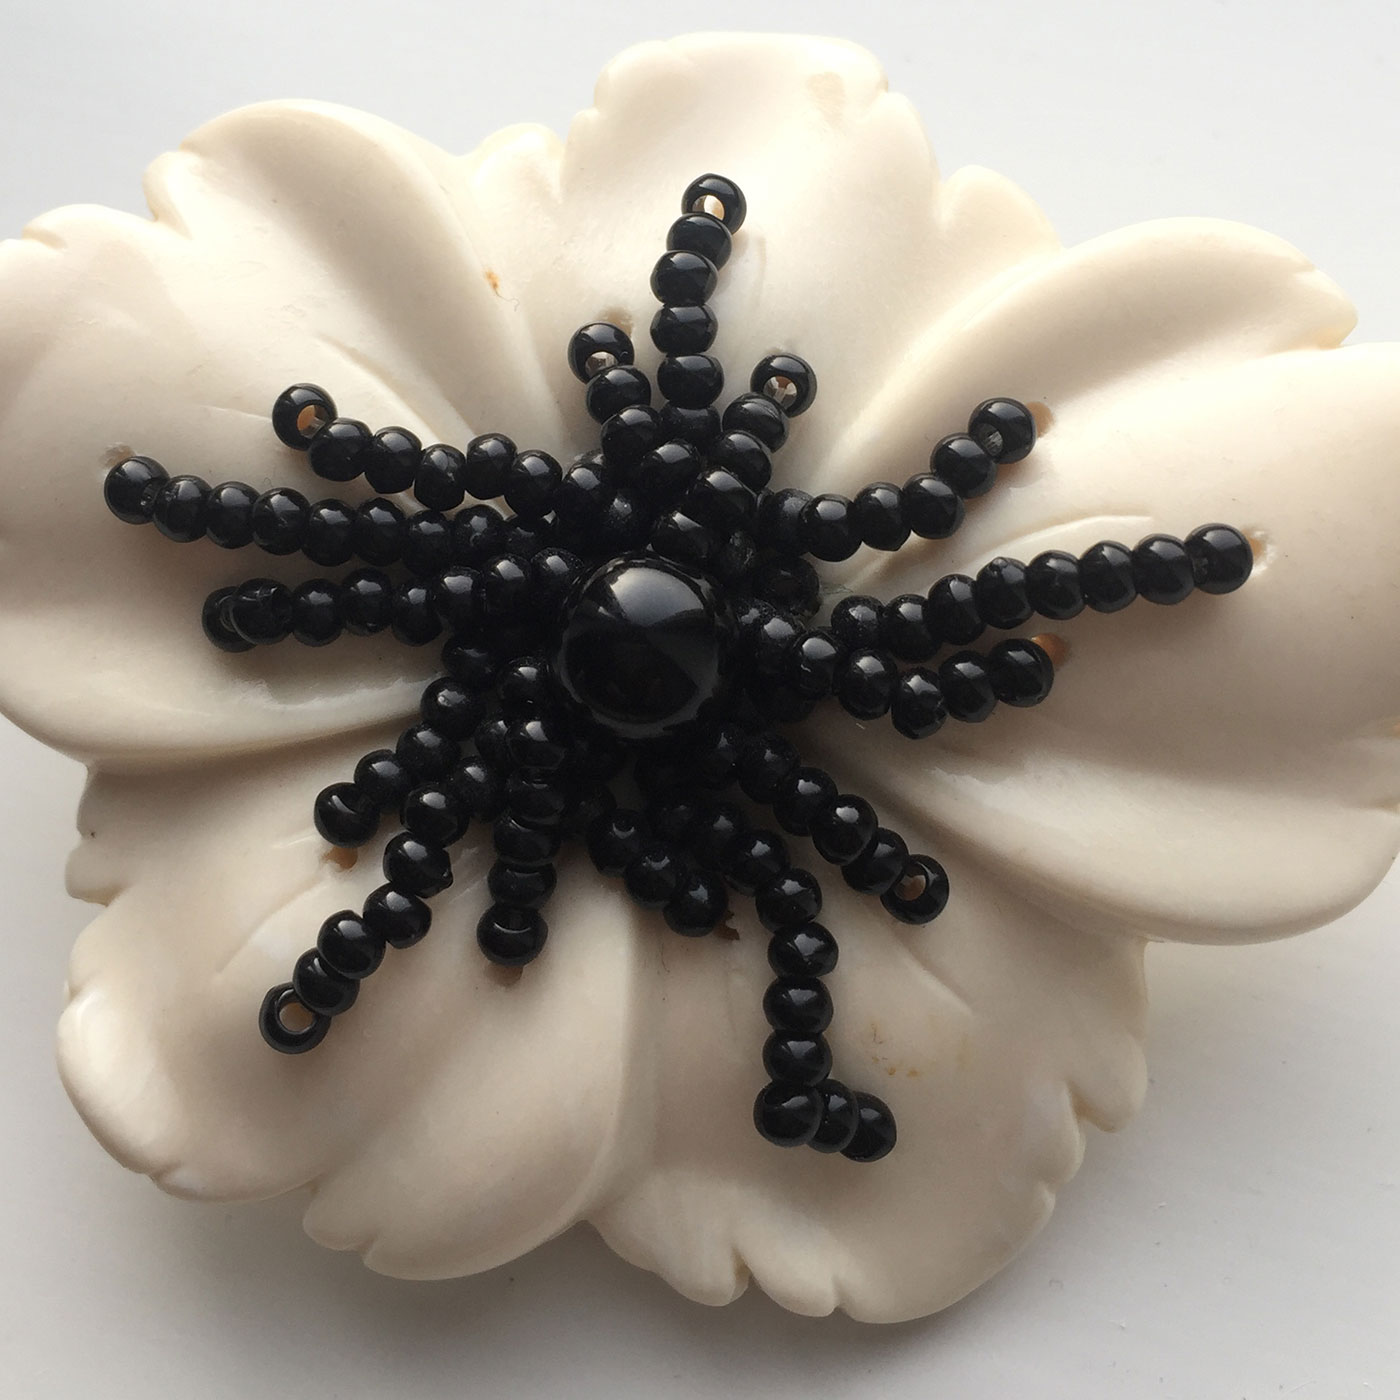 Geoffrey Beene white ceramic brooch strung with jet beading